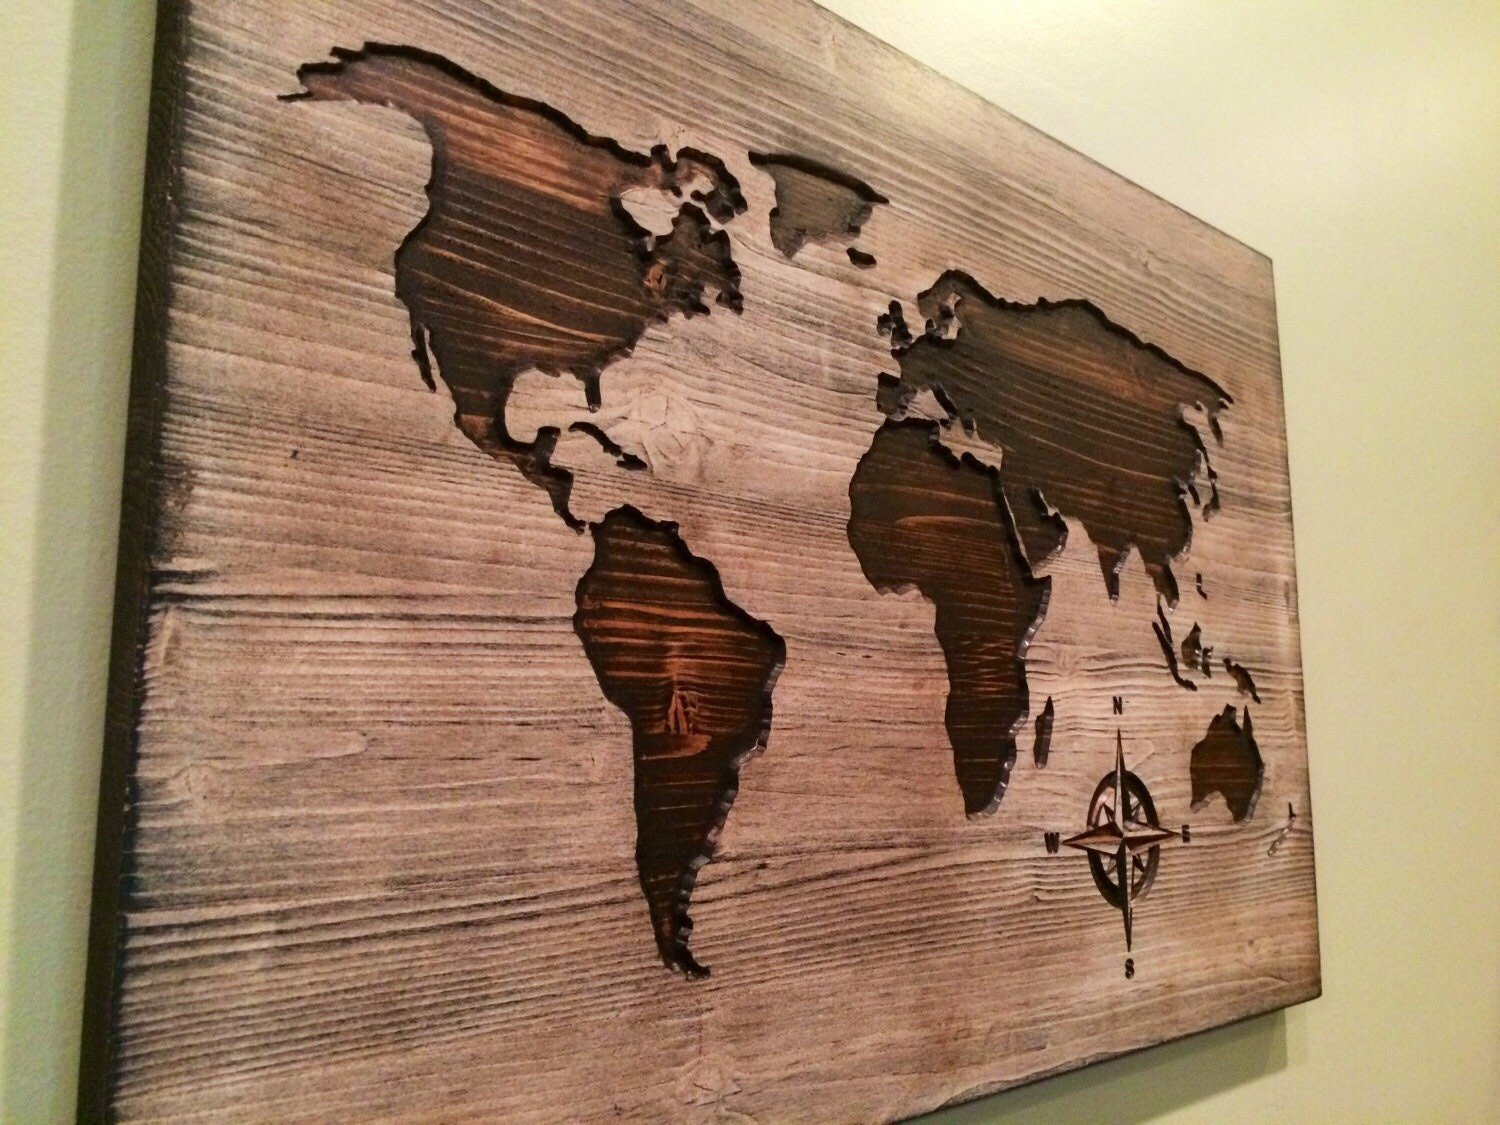 World Map Wood Wall Art carved wooden world map wood wall art world map home decor